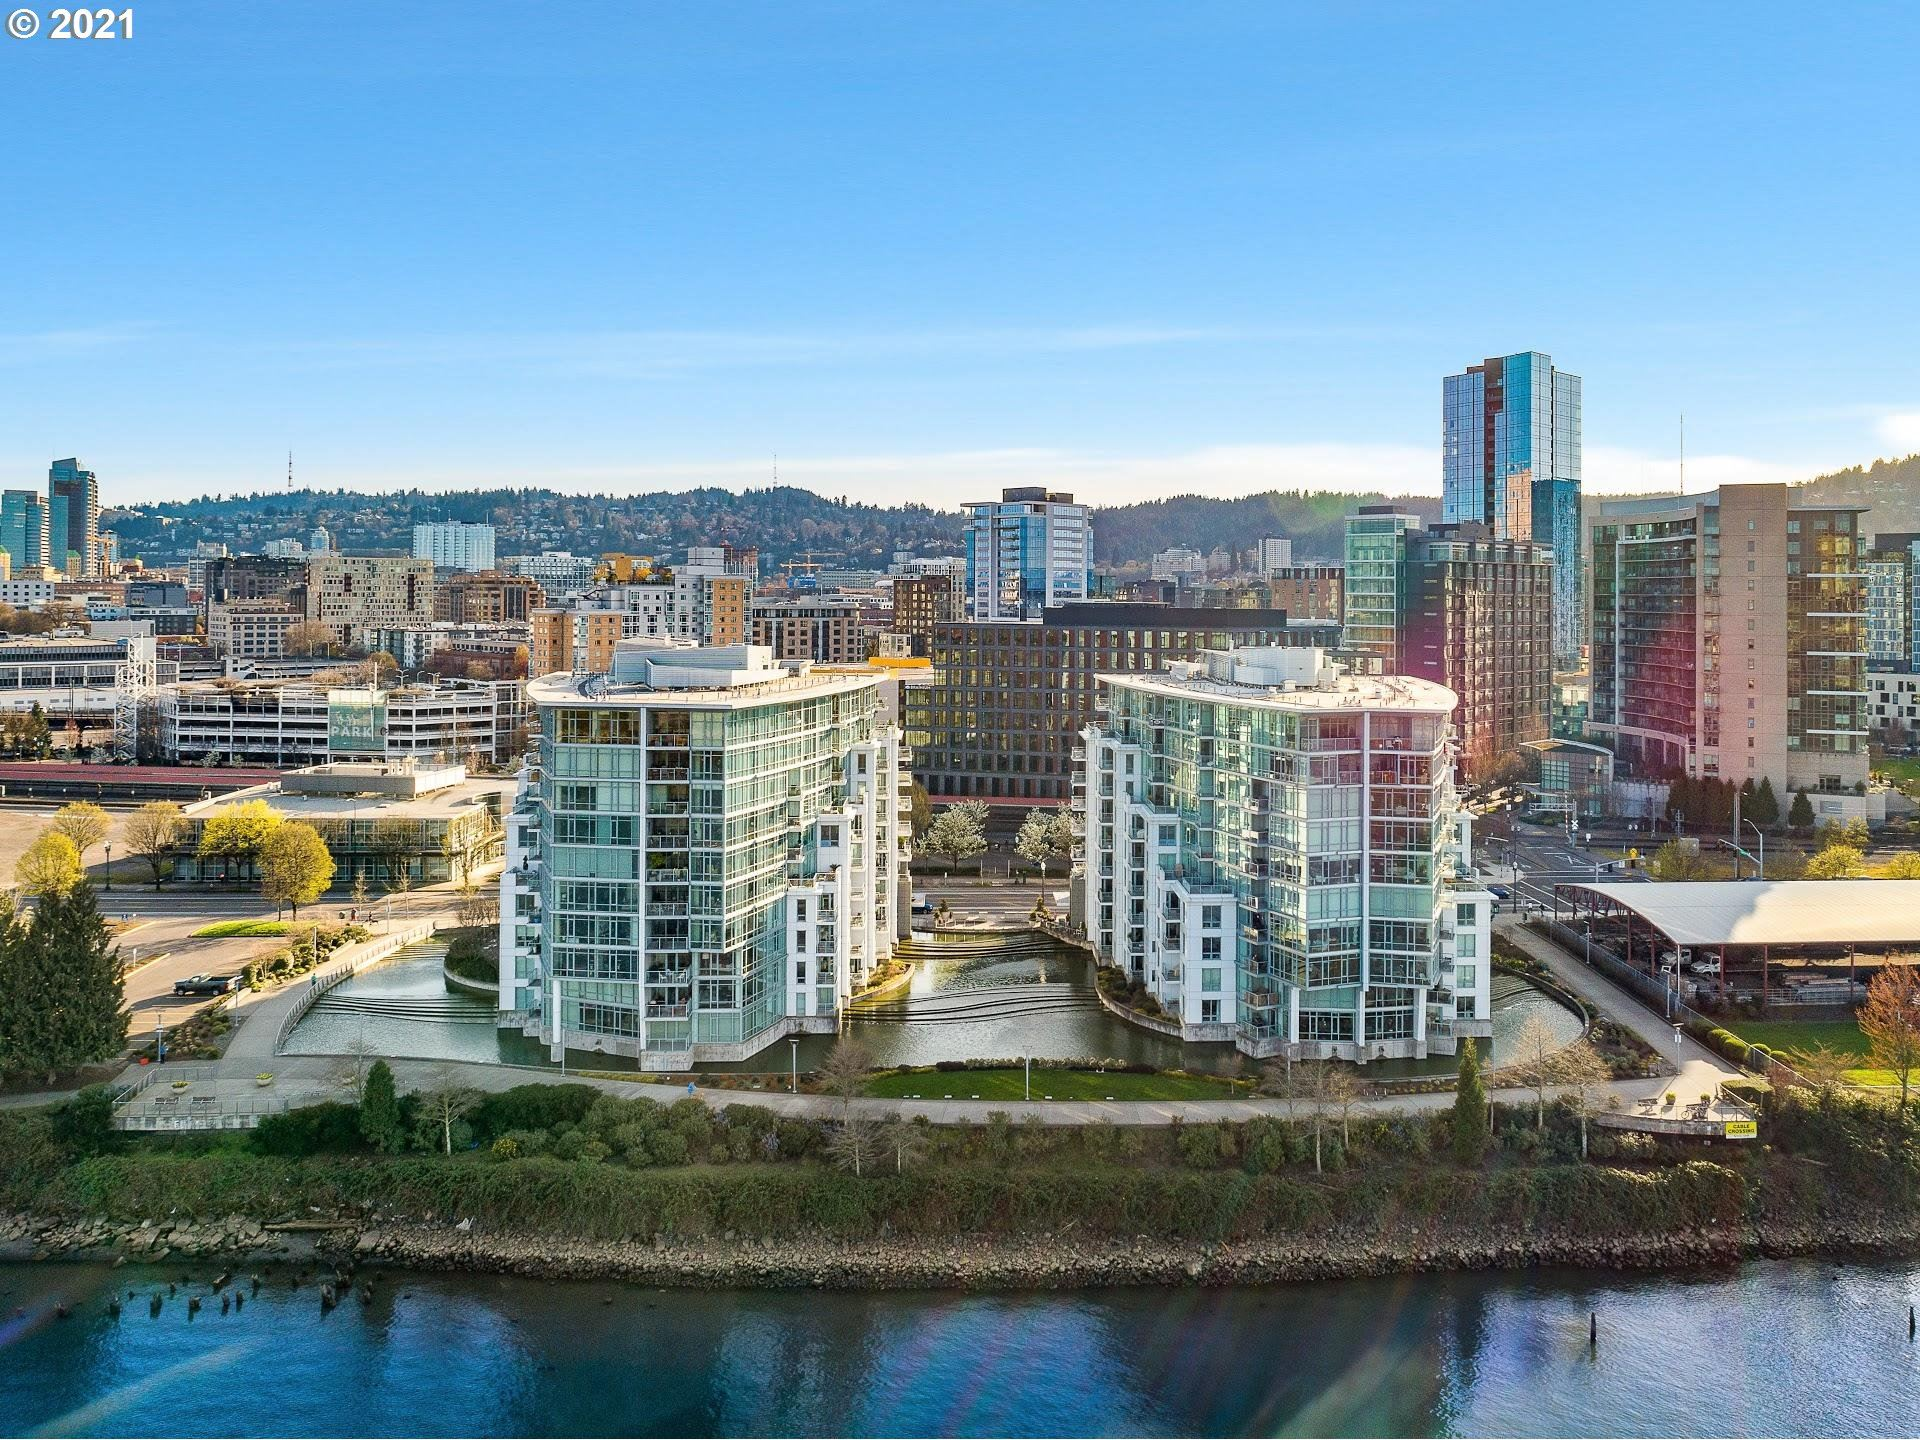 1310 NW NAITO PKWY #607, Portland, OR 97209 - MLS#: 21563716